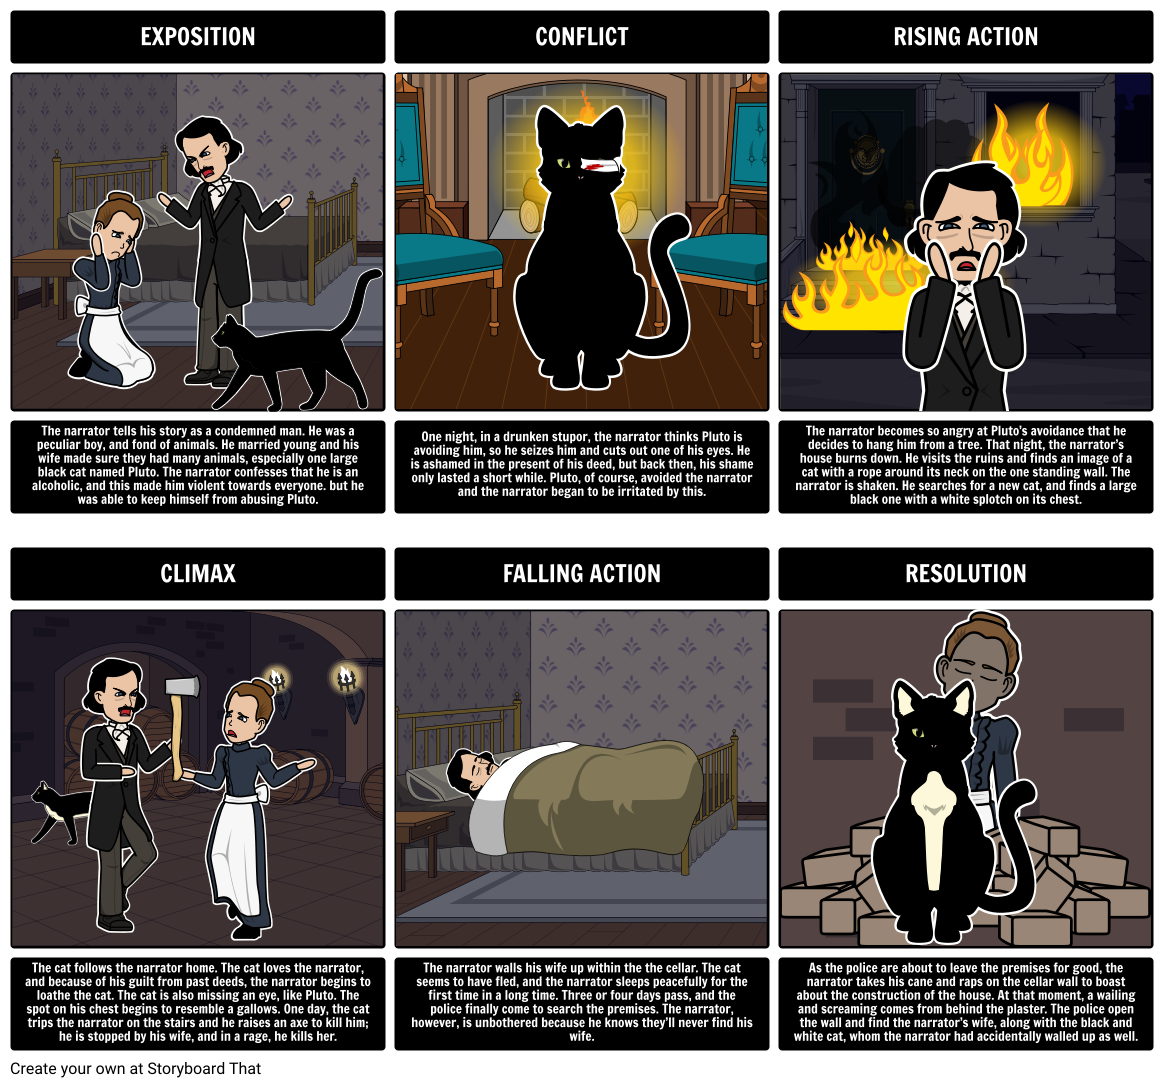 a summary of edgar allan poes the black cat and its analysis The black cat is a short story by american writer edgar allan poe it was first published in the august 19, 1843, edition of the saturday evening postit is a study of the psychology of guilt, often paired in analysis with poe's the tell-tale heart.